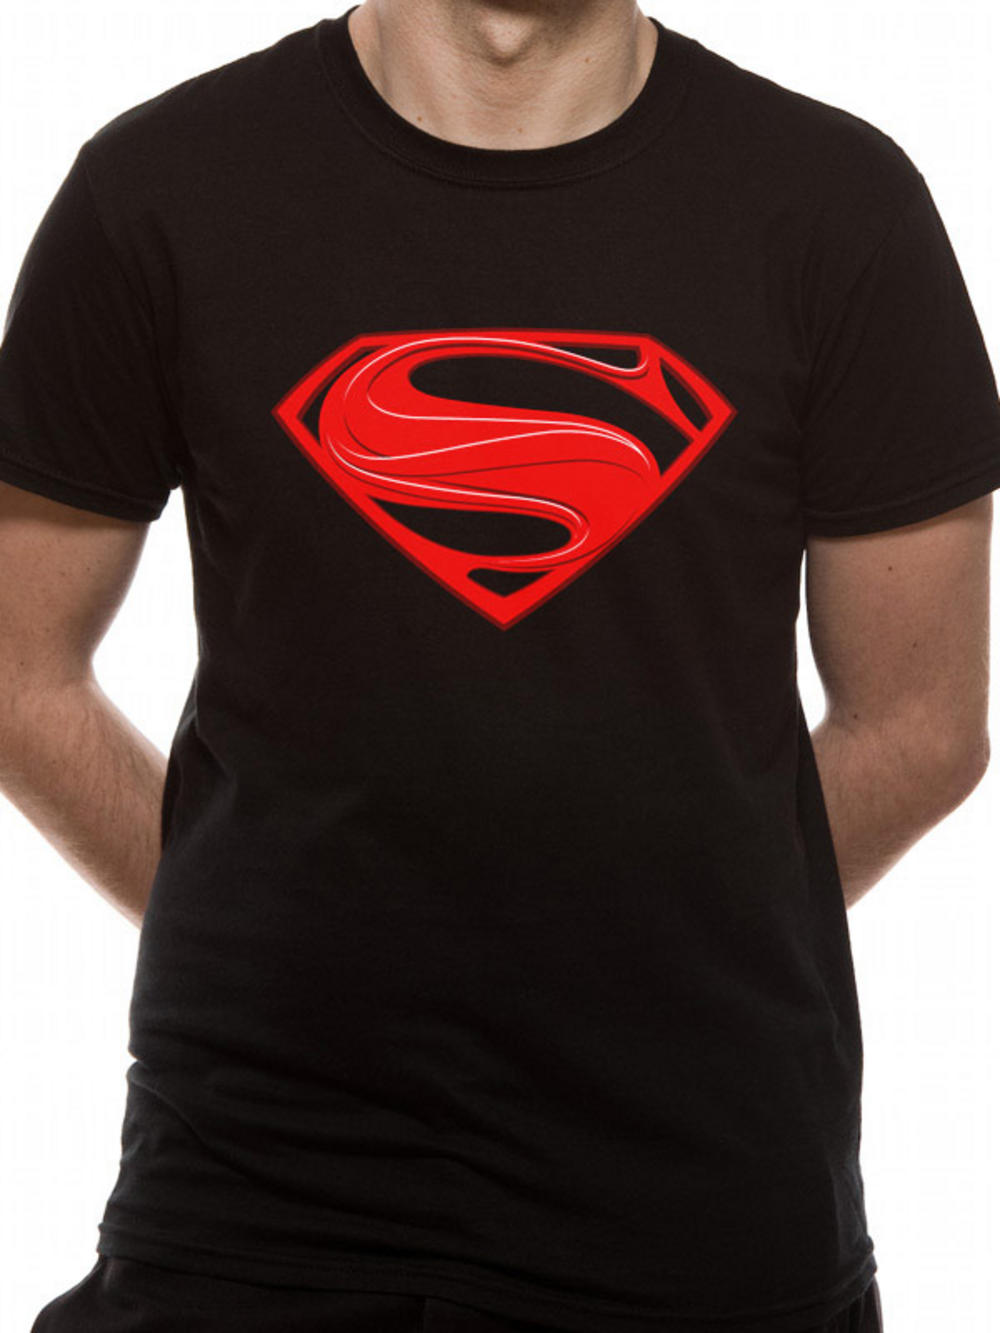 Man of steel red logo t shirt tm shop for Man of steel t shirt online